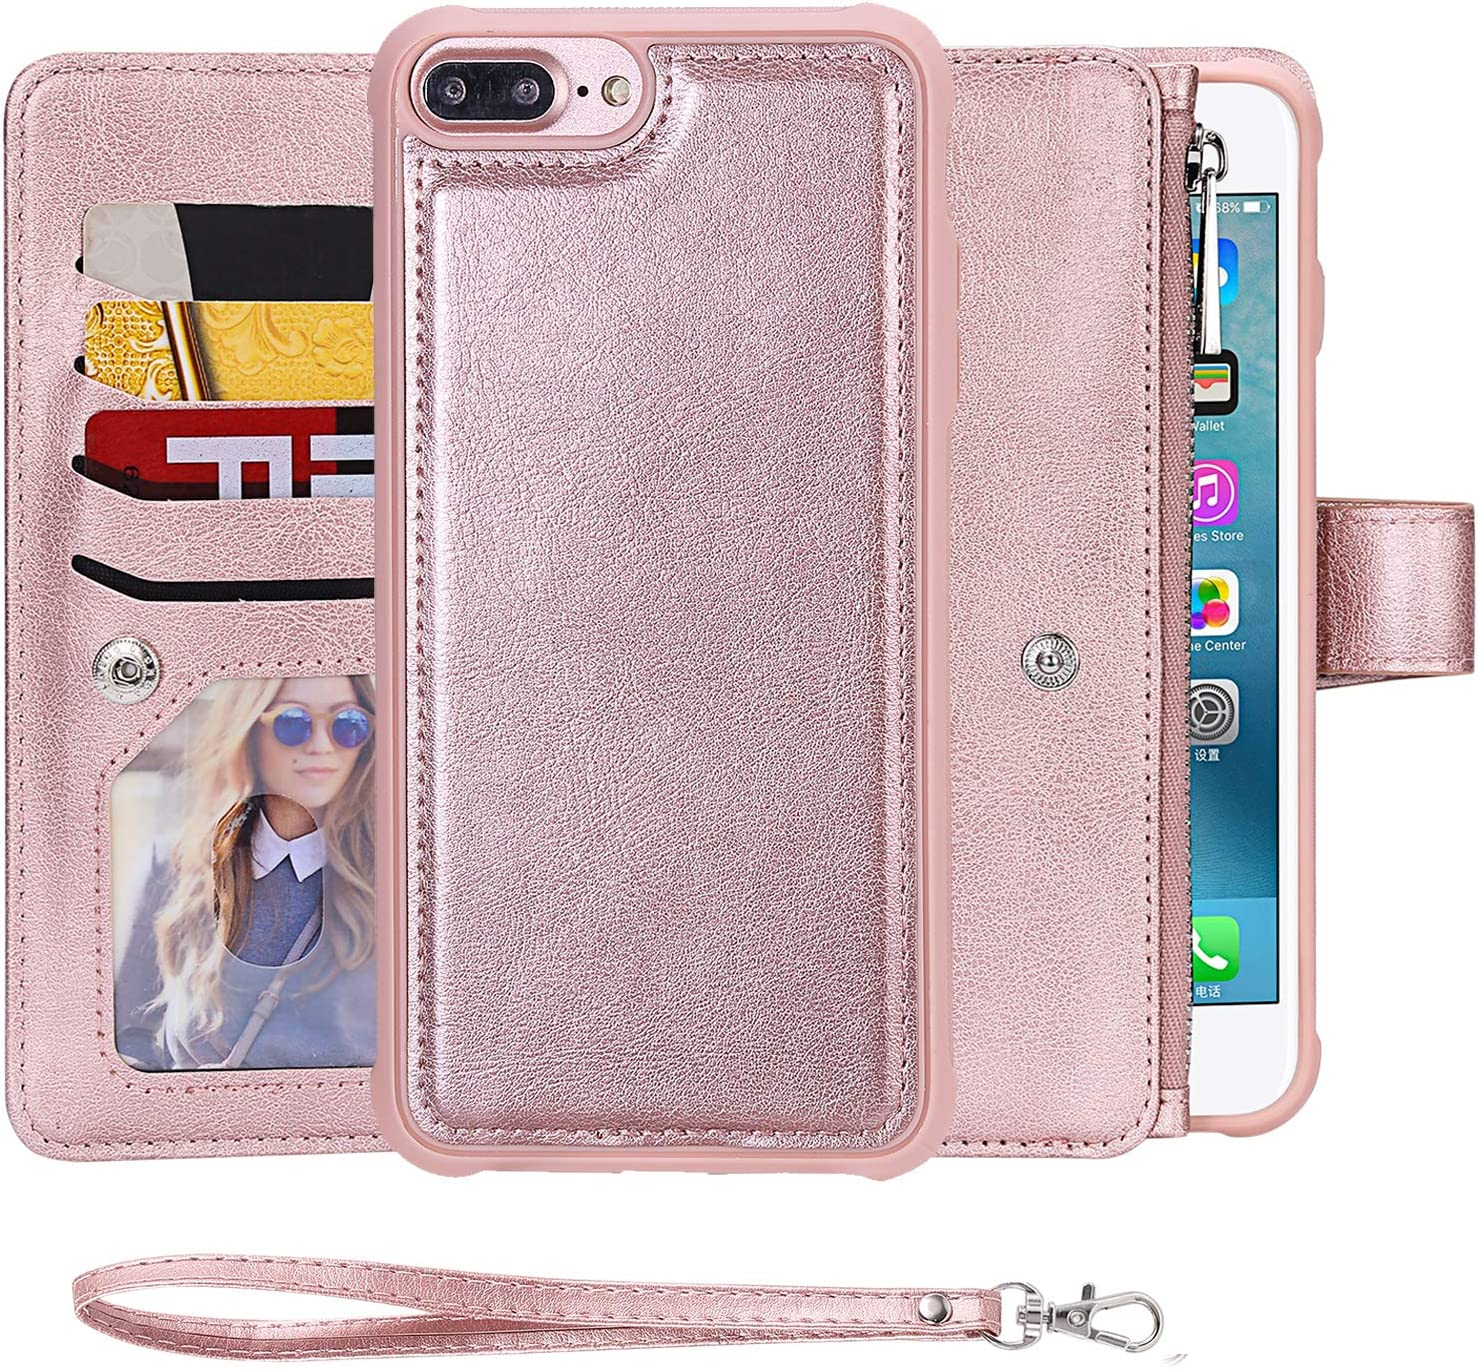 iPhone 8 Plus Case,SAVYOU iPhone 7 Plus Flip Wallet Case with Magnetic Detachable Leather Cover fit Car Mount [8 Card Slots][Wrist Strap] 2 in 1 Folio Zipper Leather Wallet Kickstand Case 5.5 inch